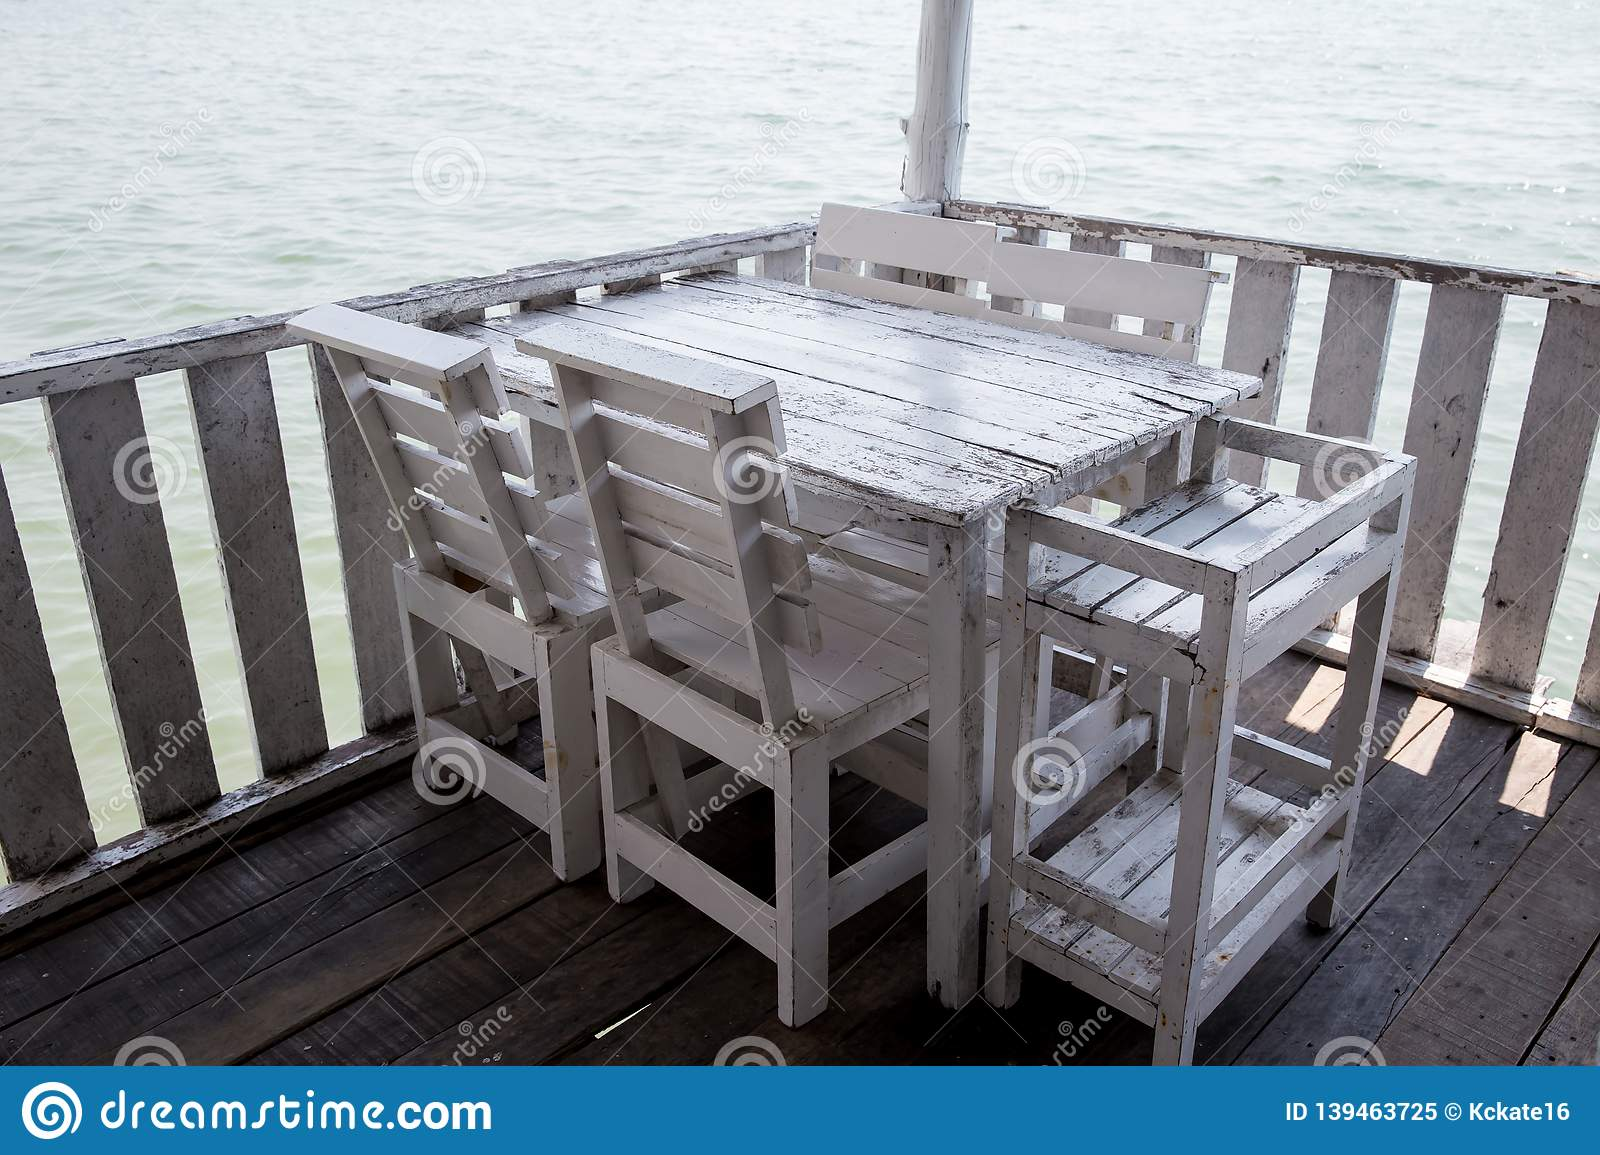 White tables and chairs in restaurant. empty rattan furniture coffee set table chair at wooden floor sea front by the sea.